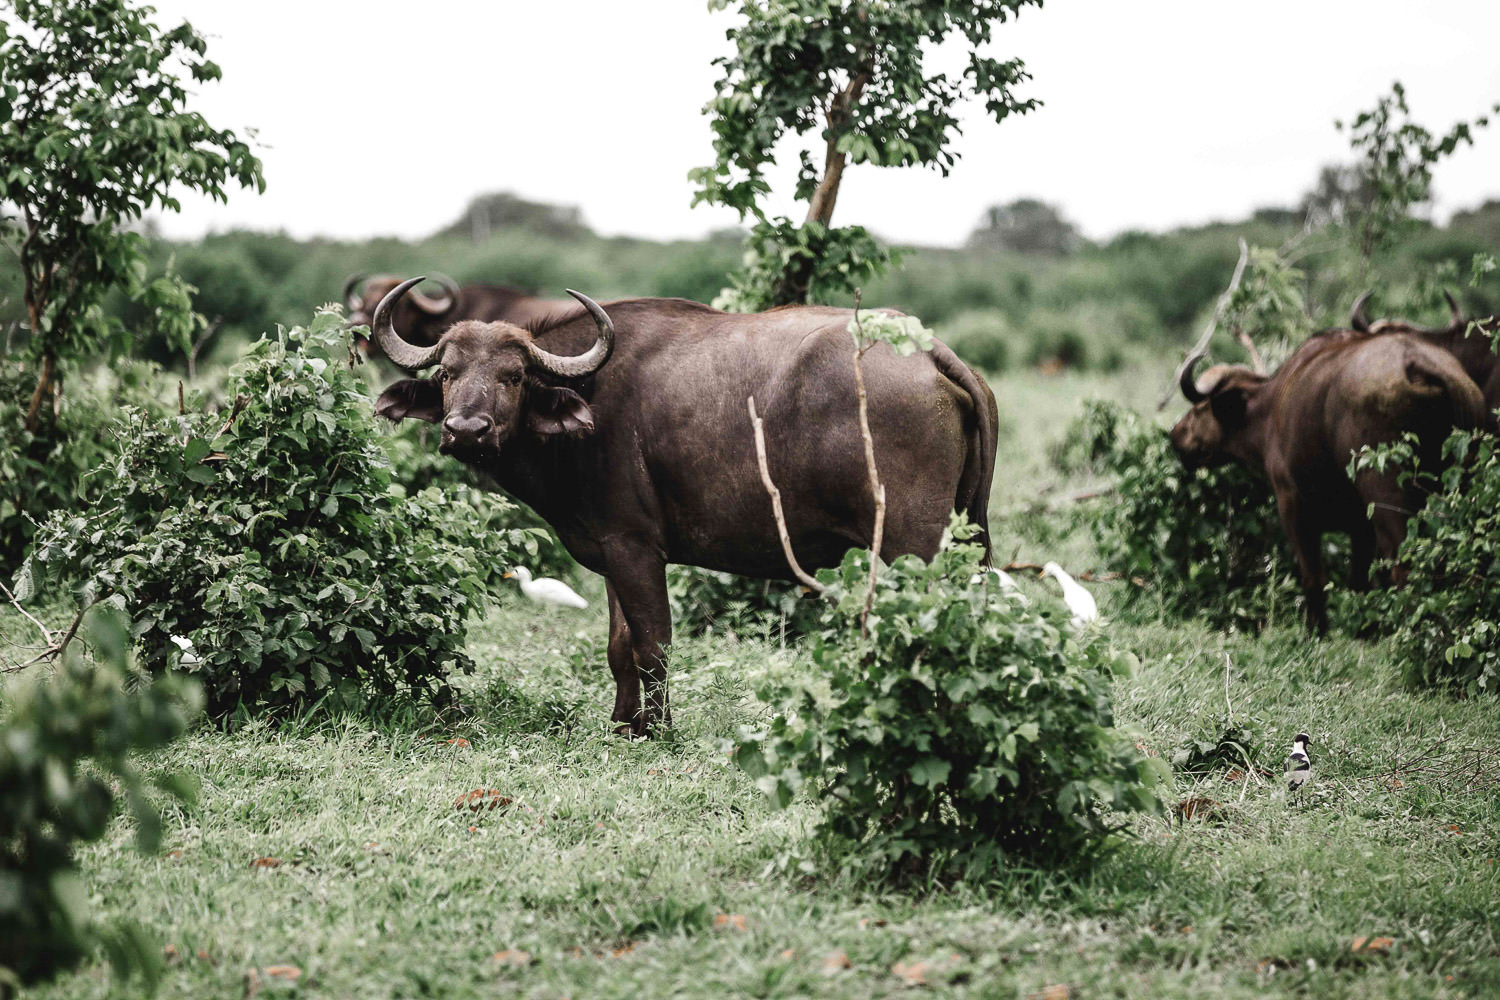 water buffalo sight in Caprivi in namibia during the Christmas safari tour